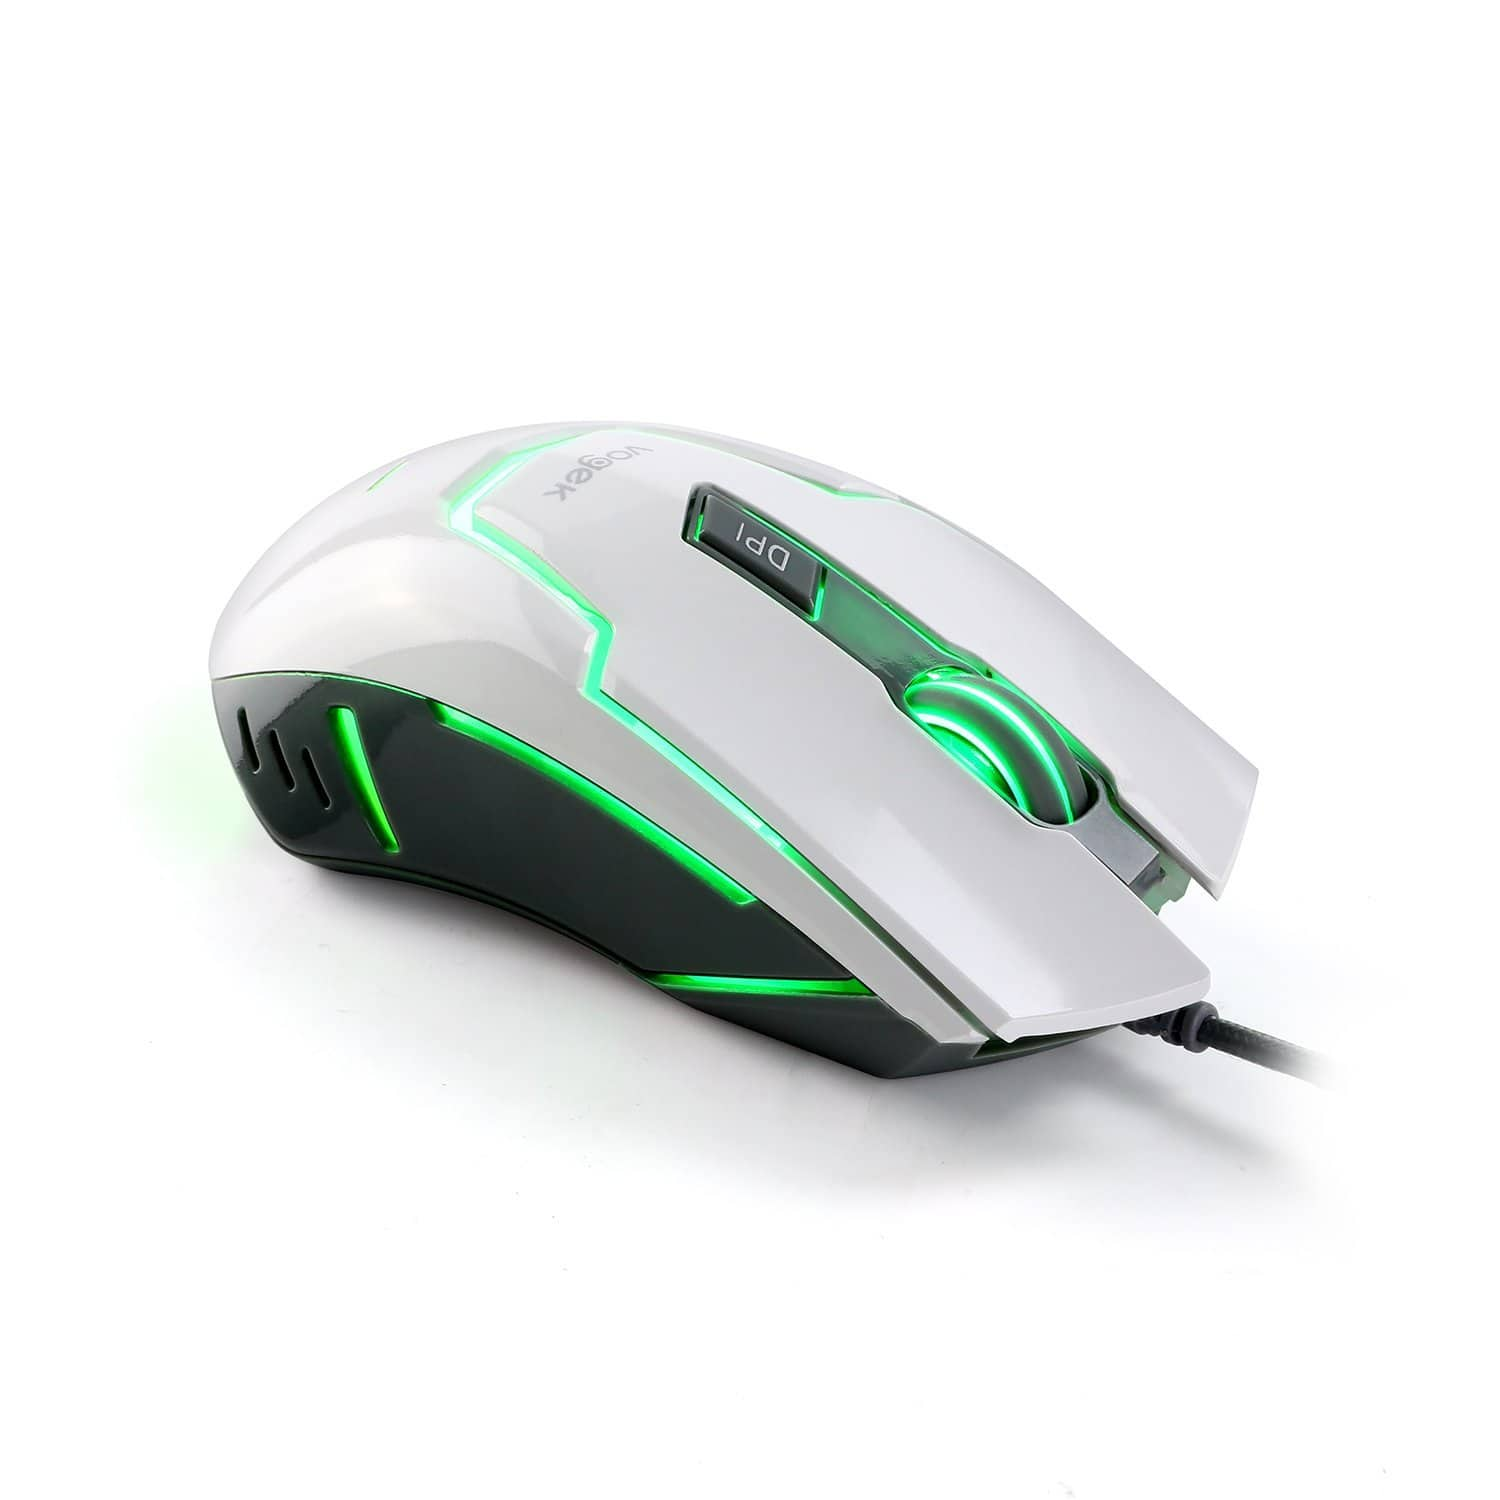 7-Color Breathing LED Light USB Wired Gaming Mouse with 4000 DPI and Advanced Gaming Sensor $12.91